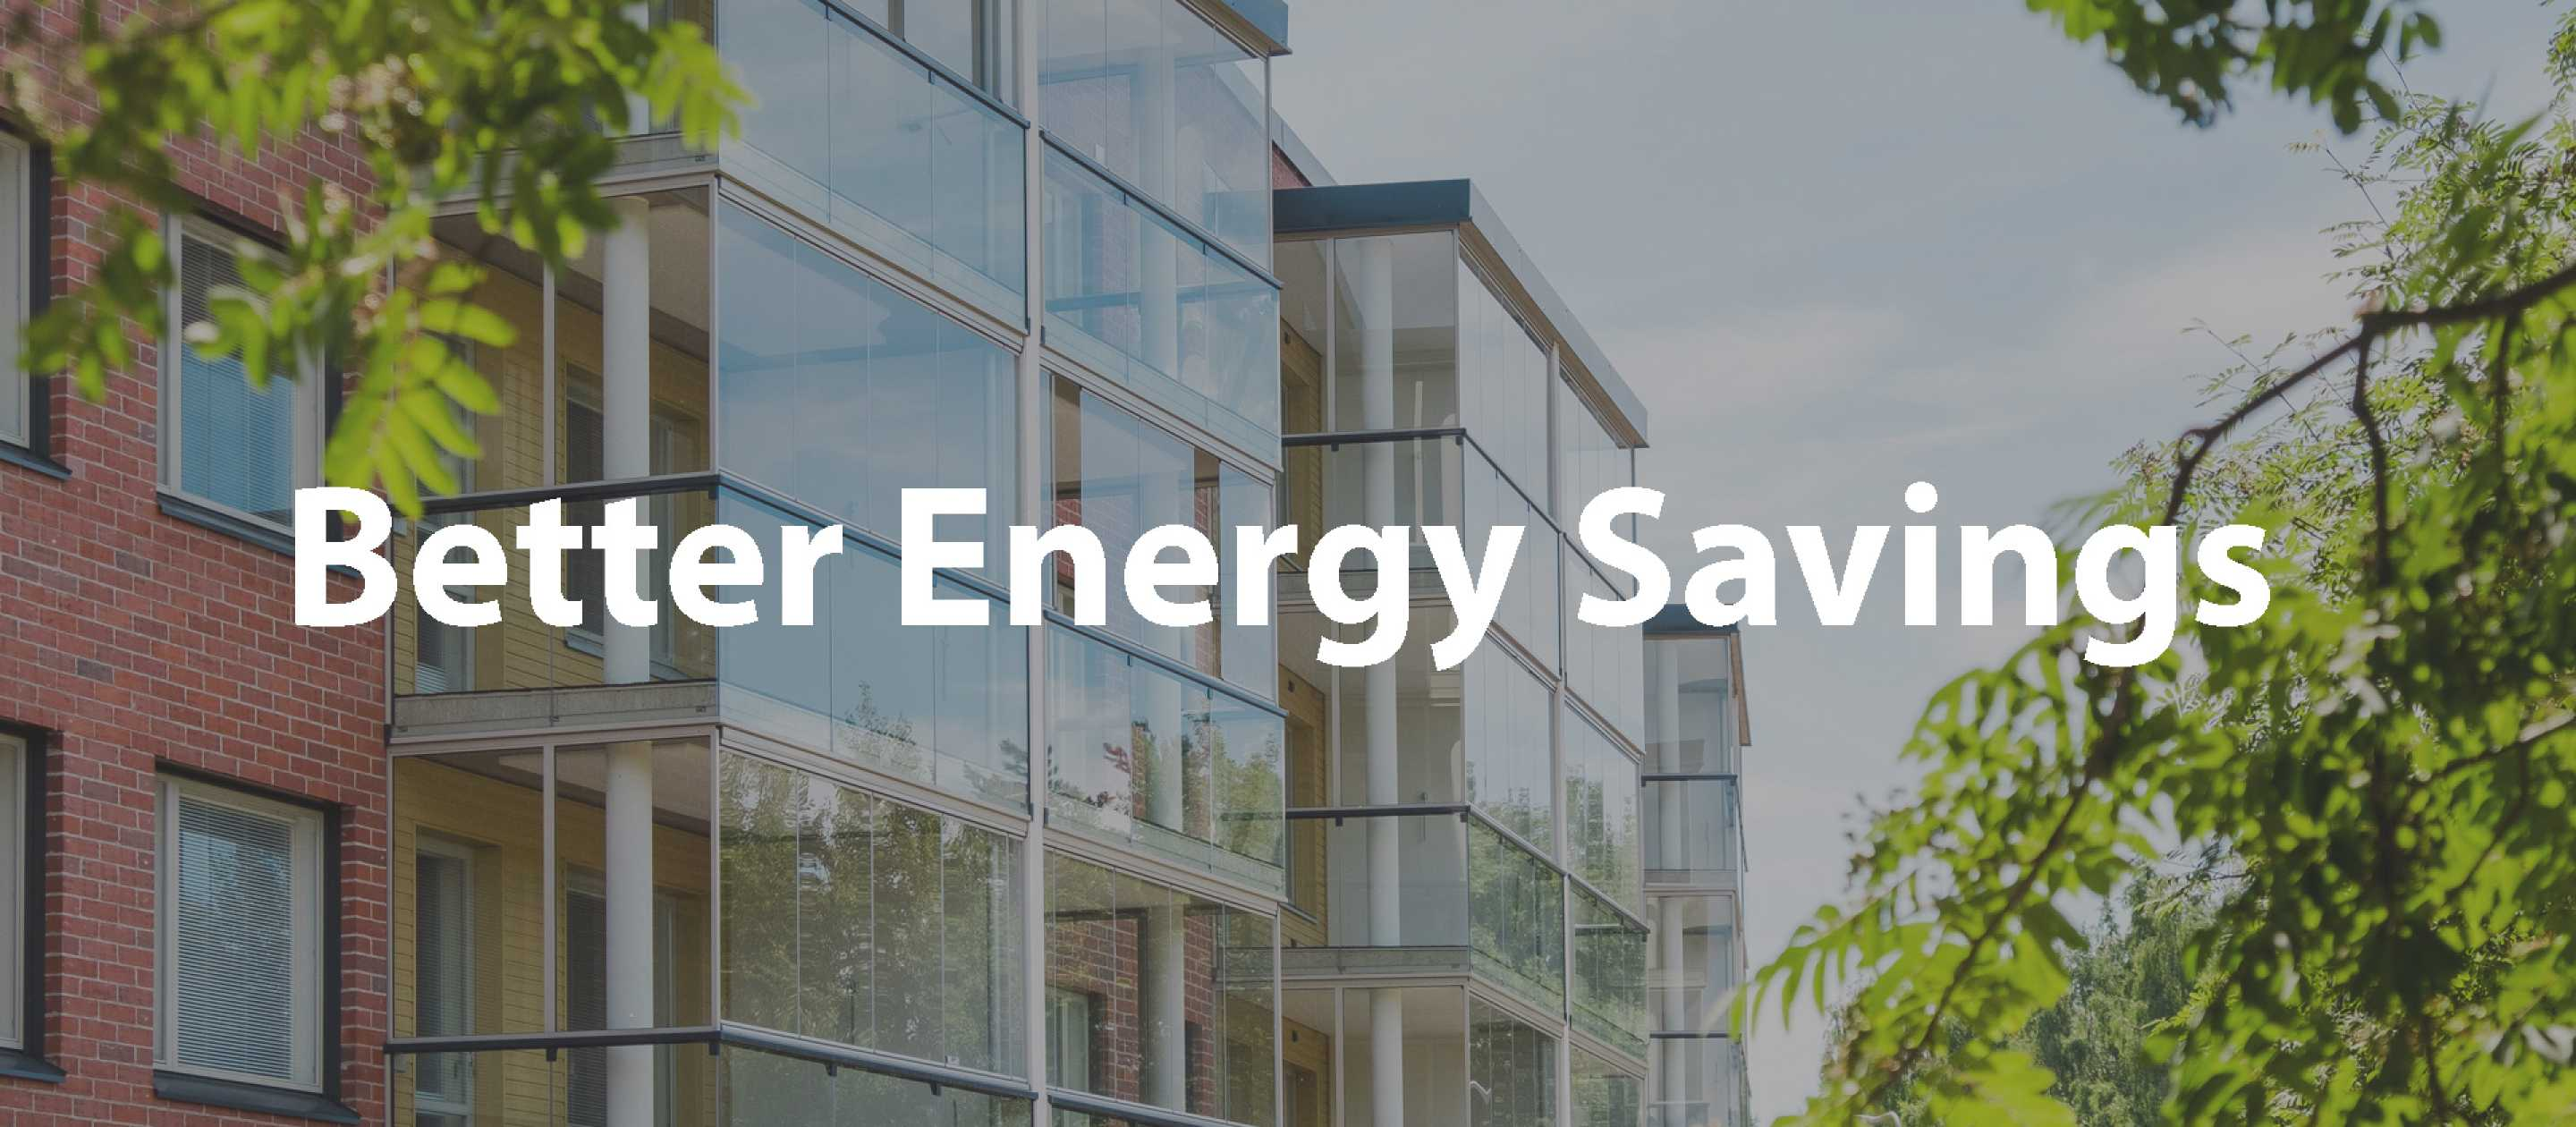 Better energy savings